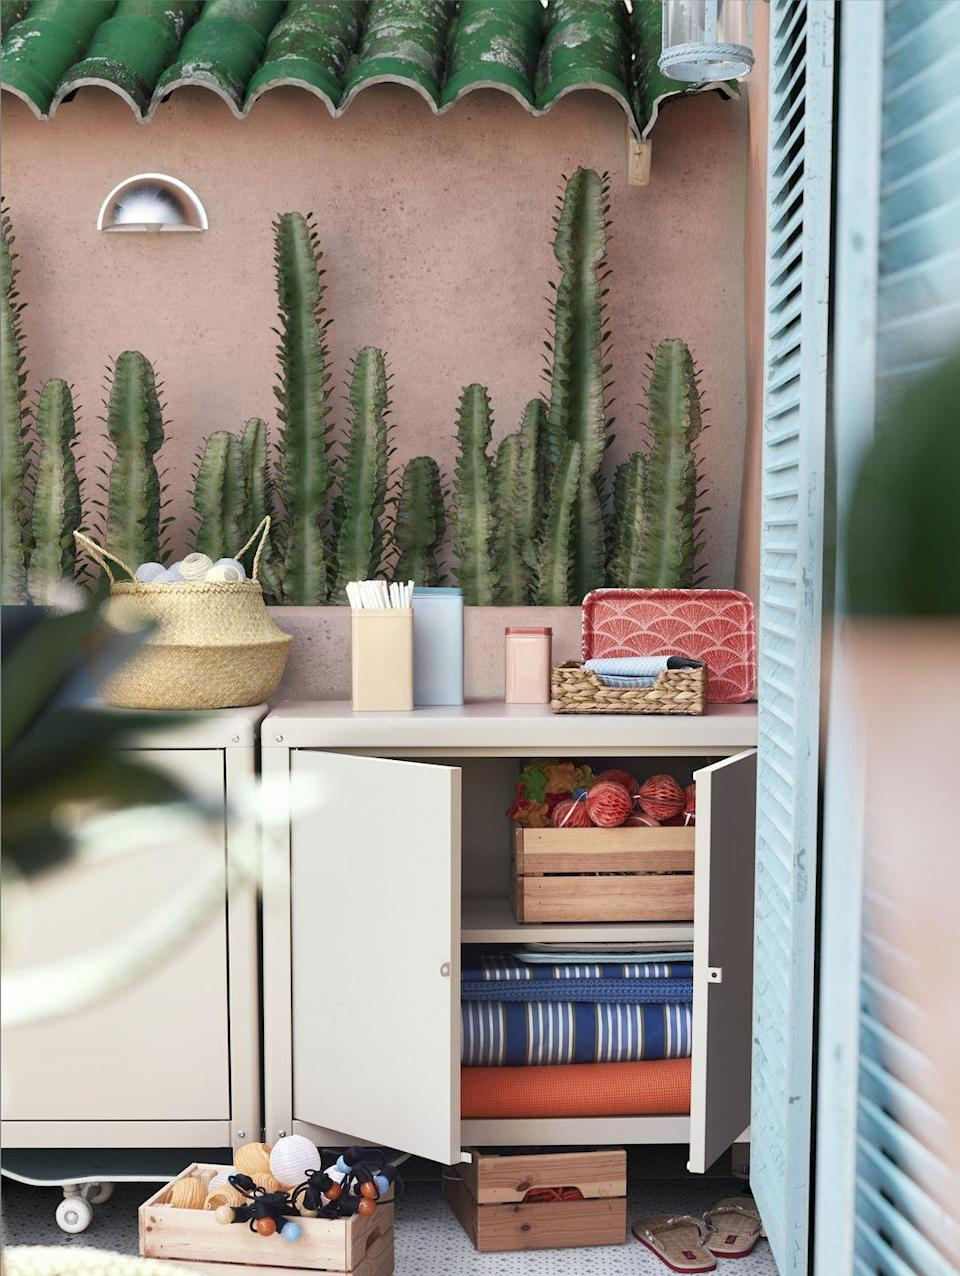 """<p>Who says storage units are simply for inside the home? Tidy away garden accessories with IKEA's practical outdoor storage unit — ideal for smaller spaces. </p><p>""""Limited space shouldn't be a hinderance when creating your personal oasis, playing with storage solutions with different heights will help maximise what you have available,"""" says Rosheen. </p><p><strong>READ MORE</strong>: <a href=""""https://www.countryliving.com/uk/homes-interiors/gardens/g34138057/bulb-planters/"""" rel=""""nofollow noopener"""" target=""""_blank"""" data-ylk=""""slk:7 of the best bulb planters to buy"""" class=""""link rapid-noclick-resp"""">7 of the best bulb planters to buy</a></p>"""